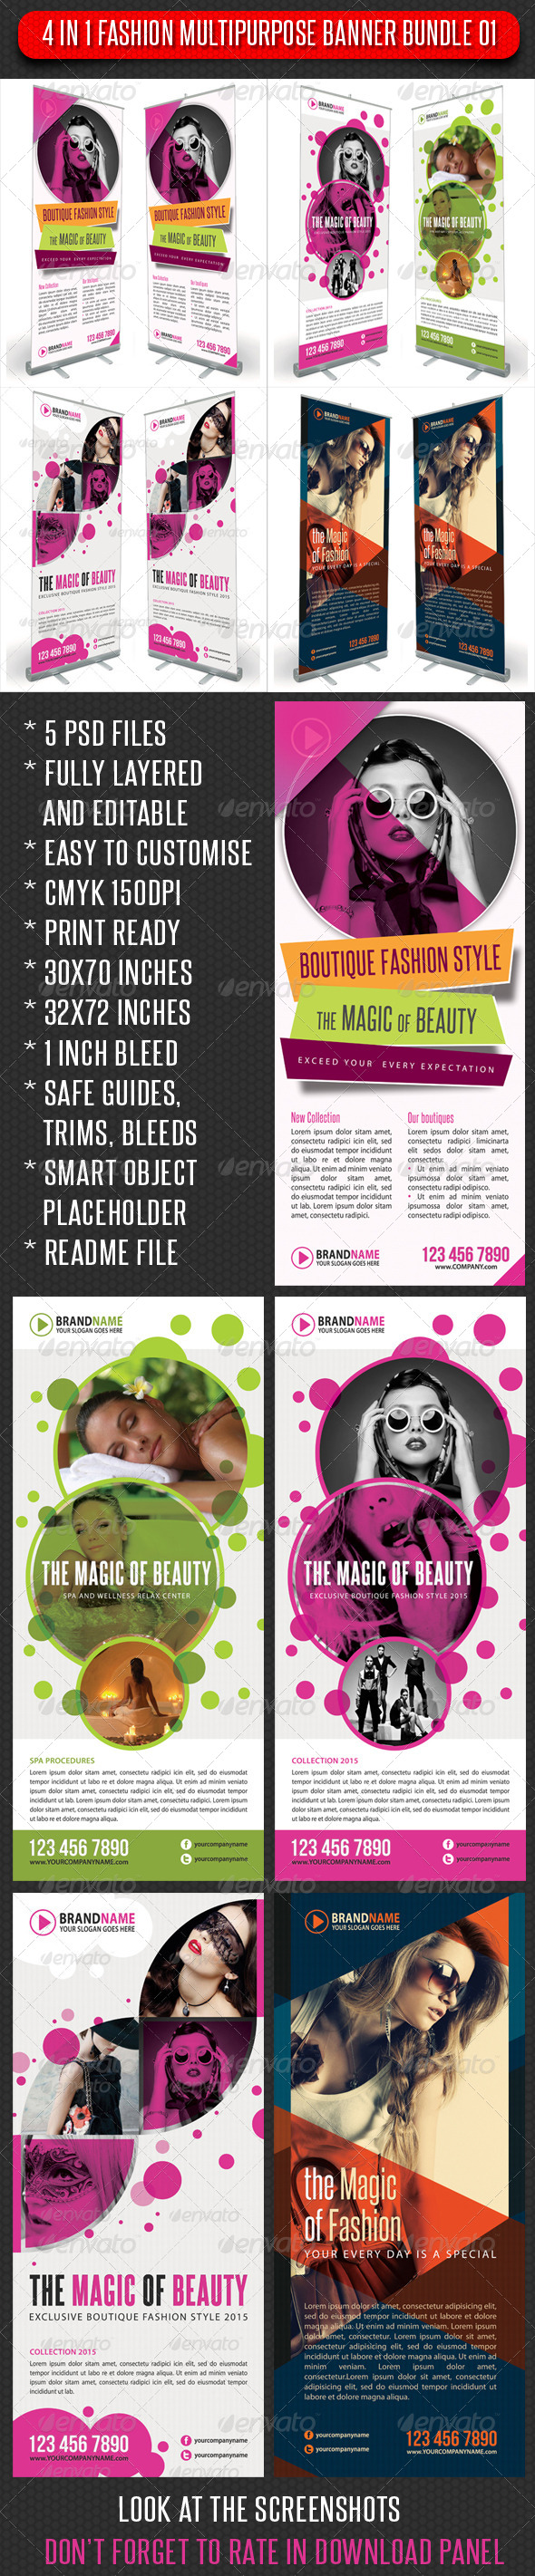 GraphicRiver 4 in 1 Fashion Multipurpose Banner Bundle 01 5919441